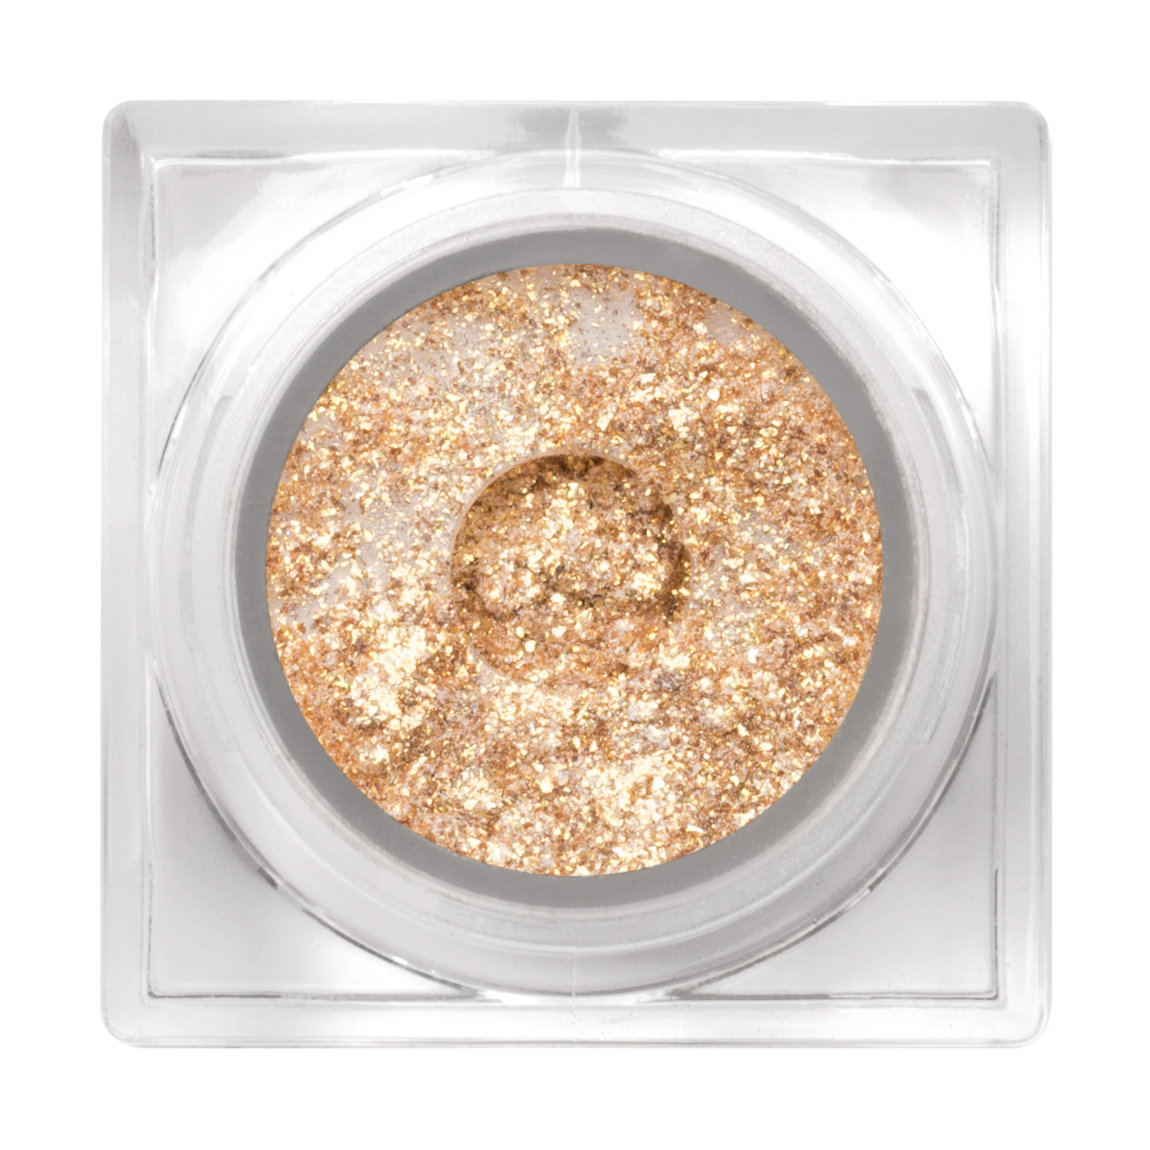 Lit Cosmetics Lit Metals Luminous (Gold) alternative view 1 - product swatch.